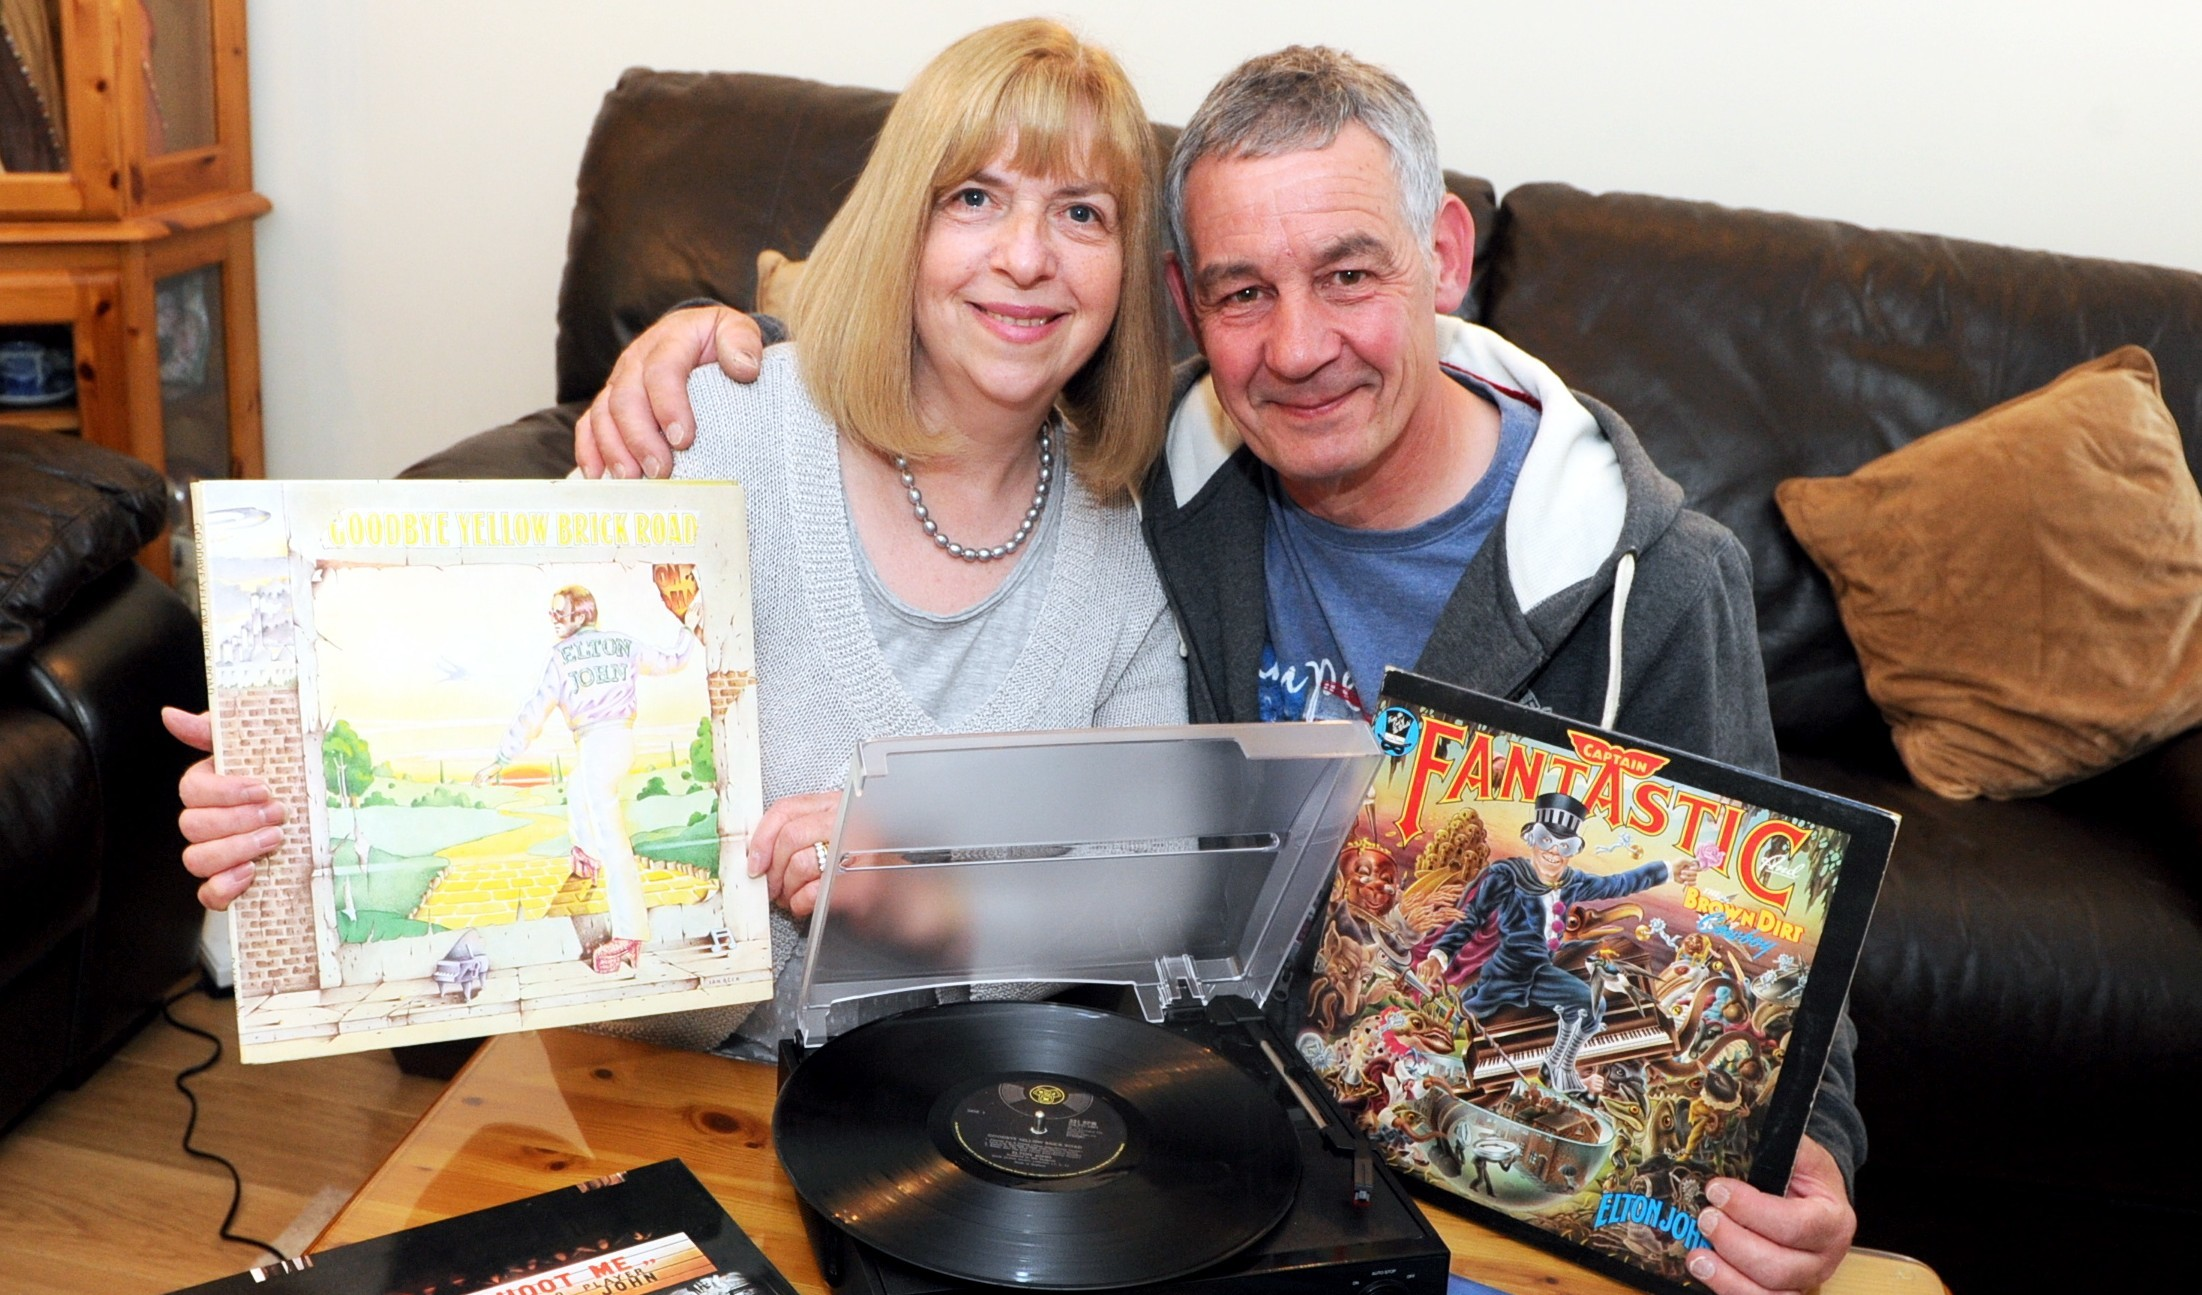 Saturday night's alright:  Caroline and Alastair Taylor can't wait to see Elton John tomorrow.